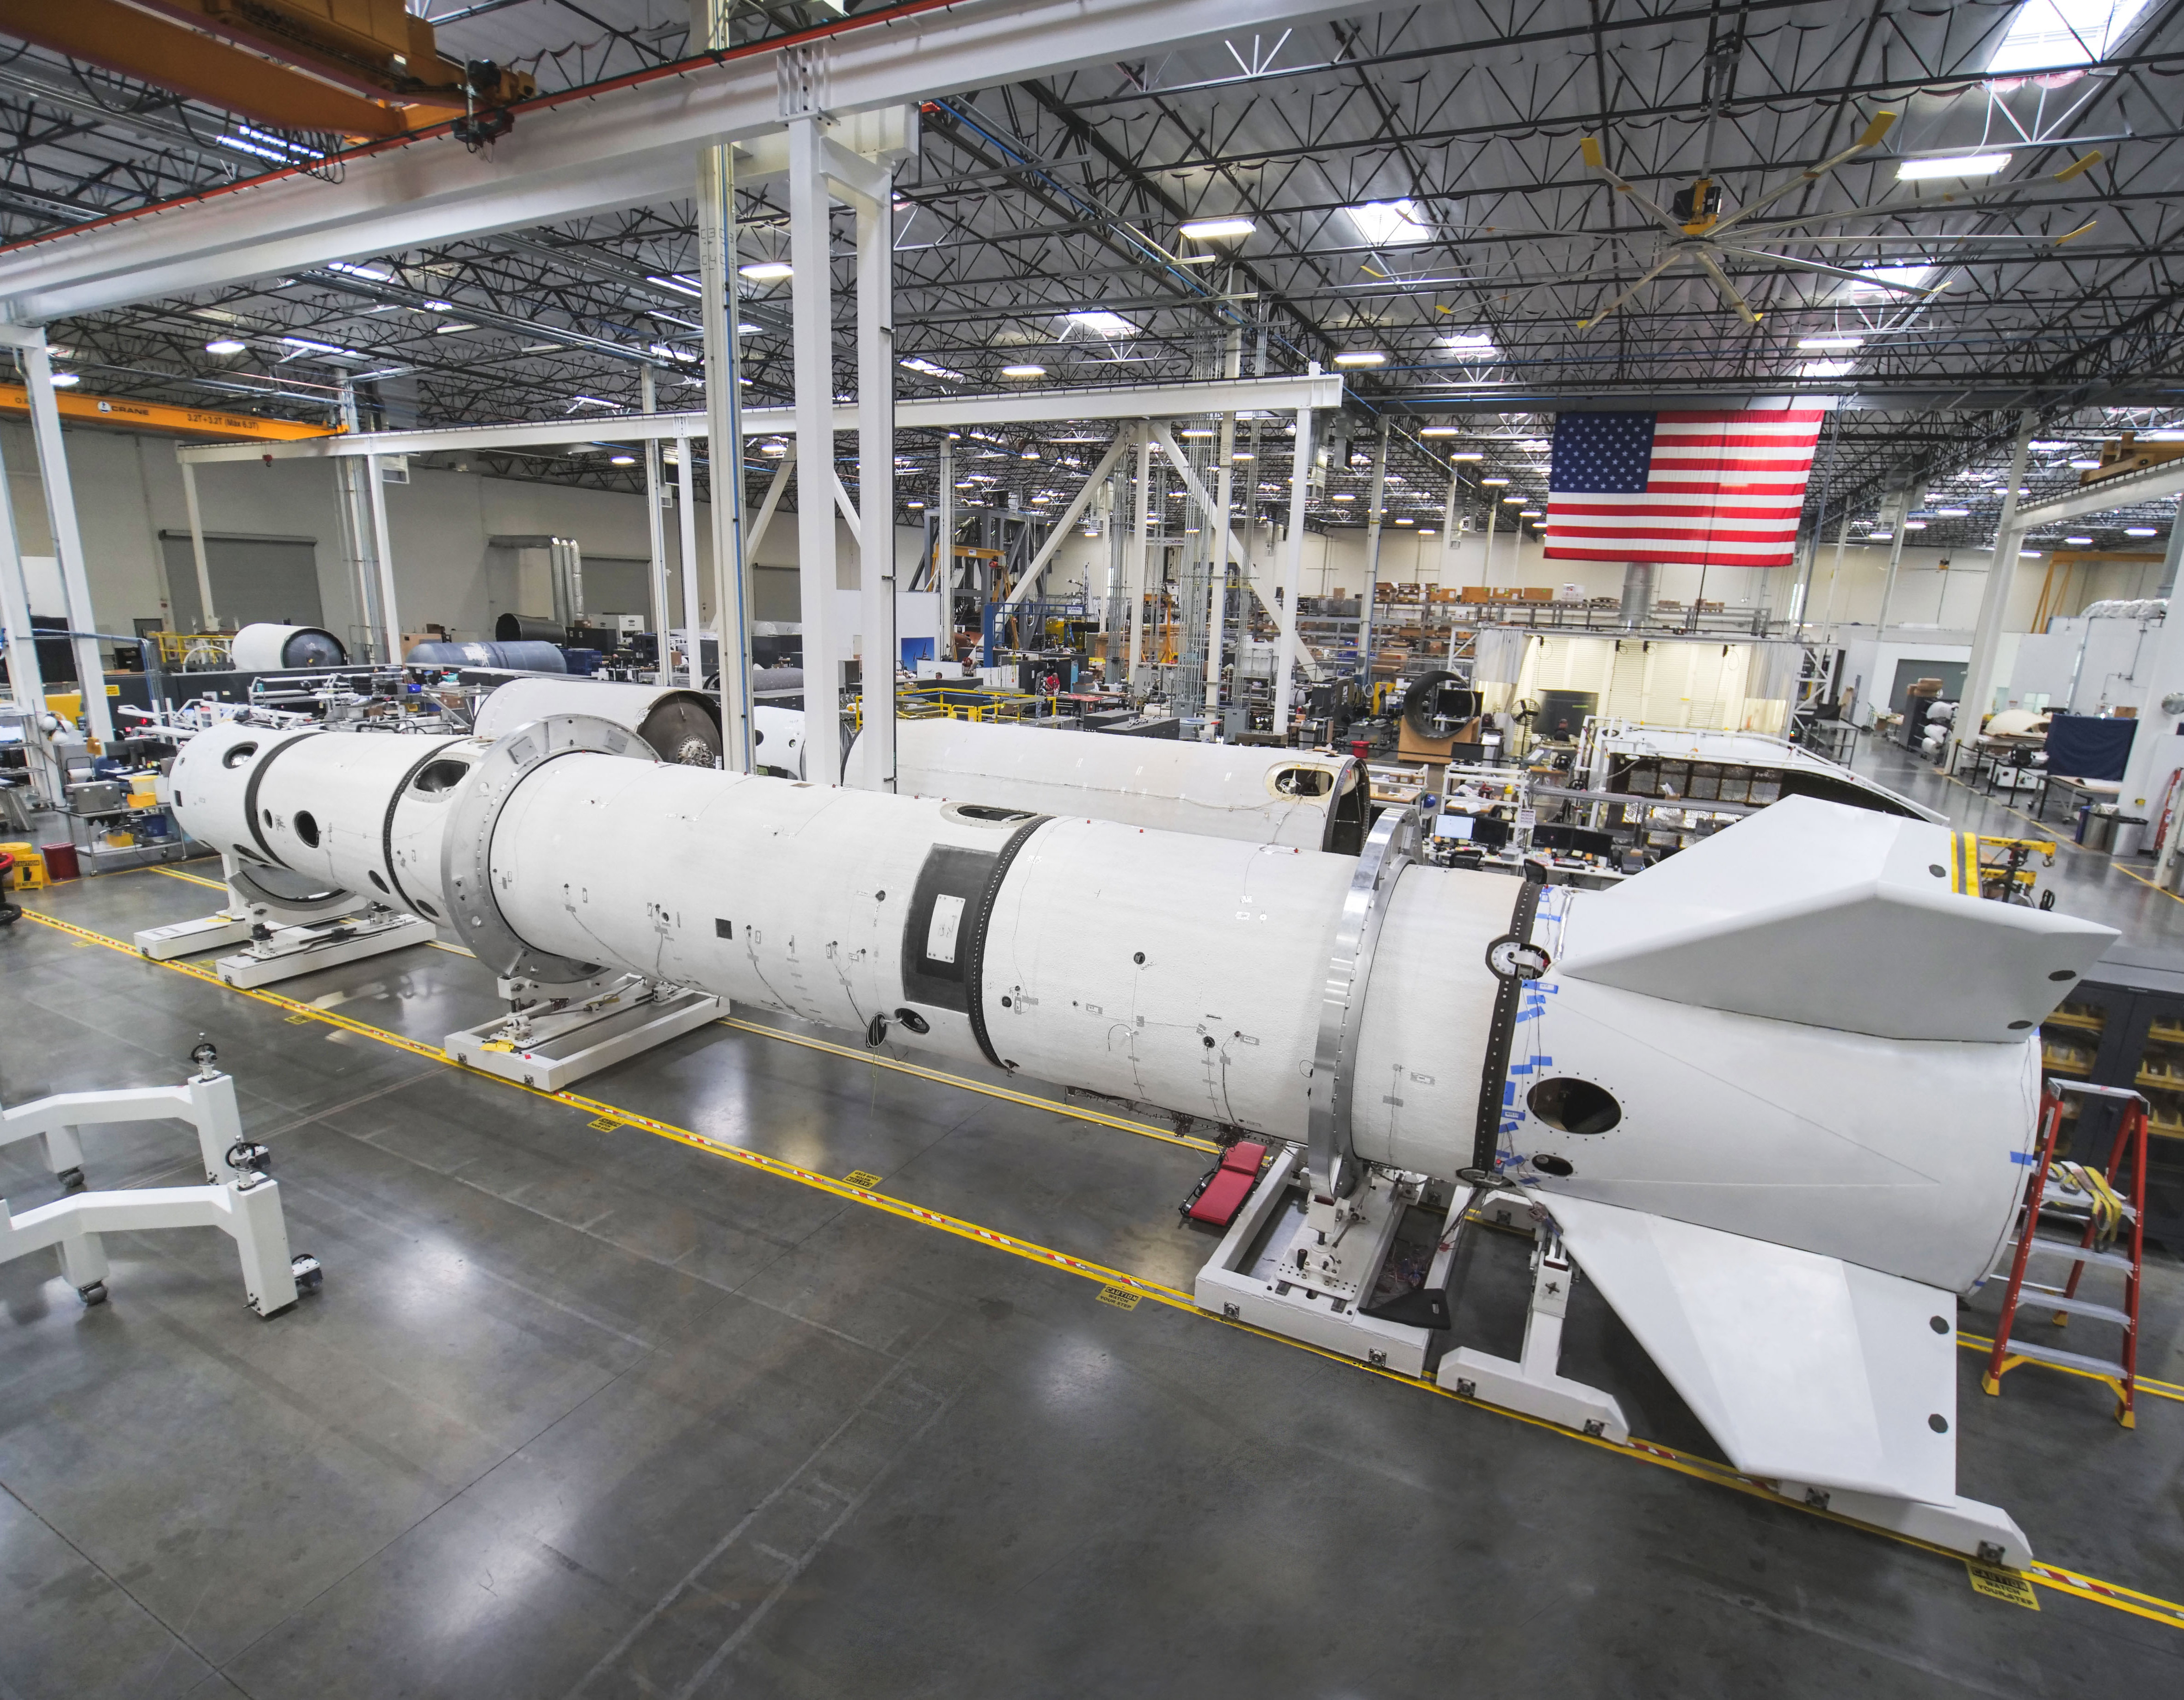 With a simple and cheap rocket, Virgin Orbit aims for the